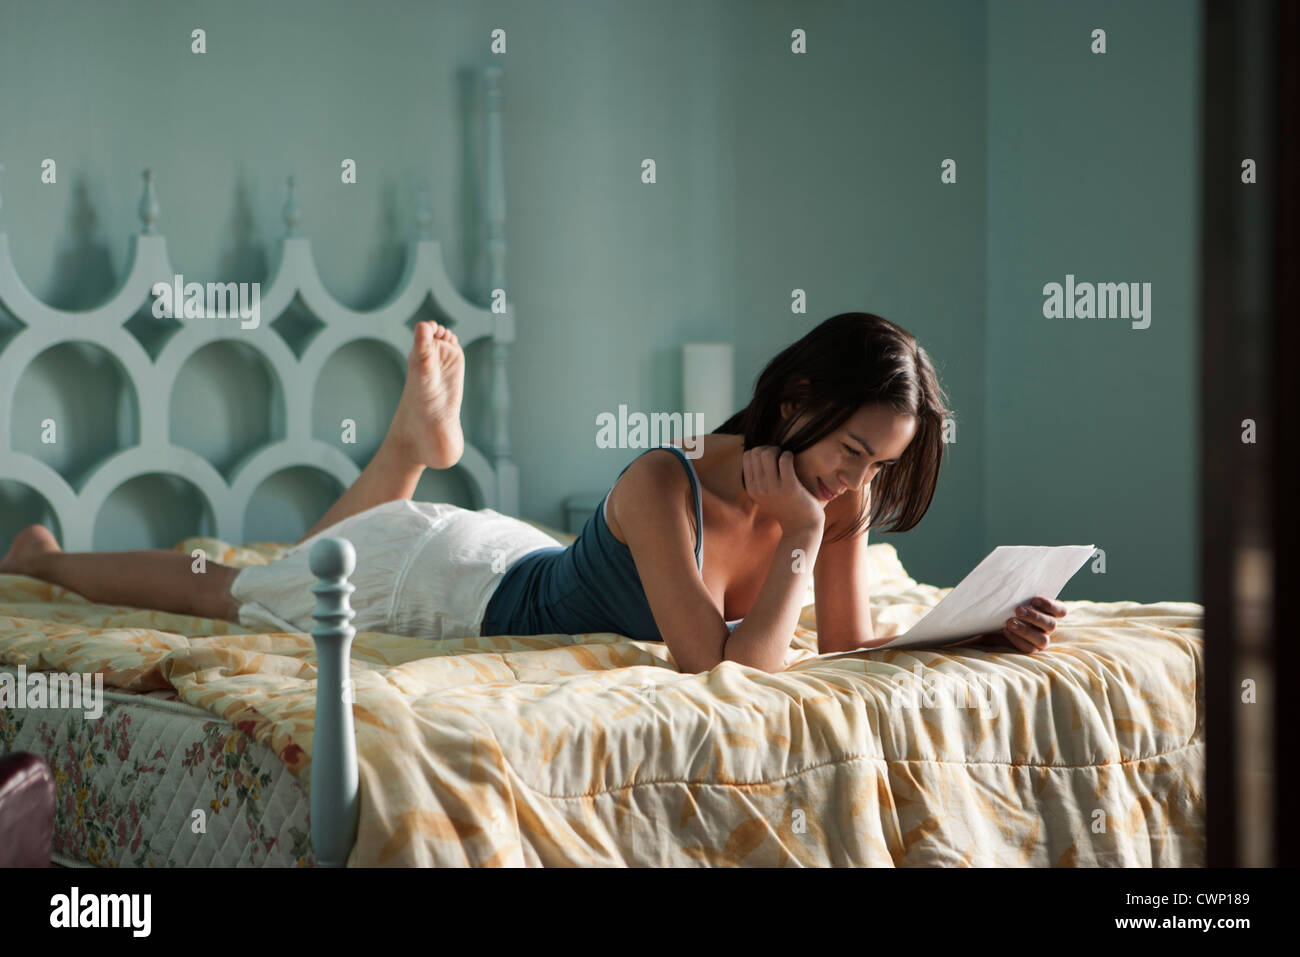 Woman lying on bed, reading letter - Stock Image